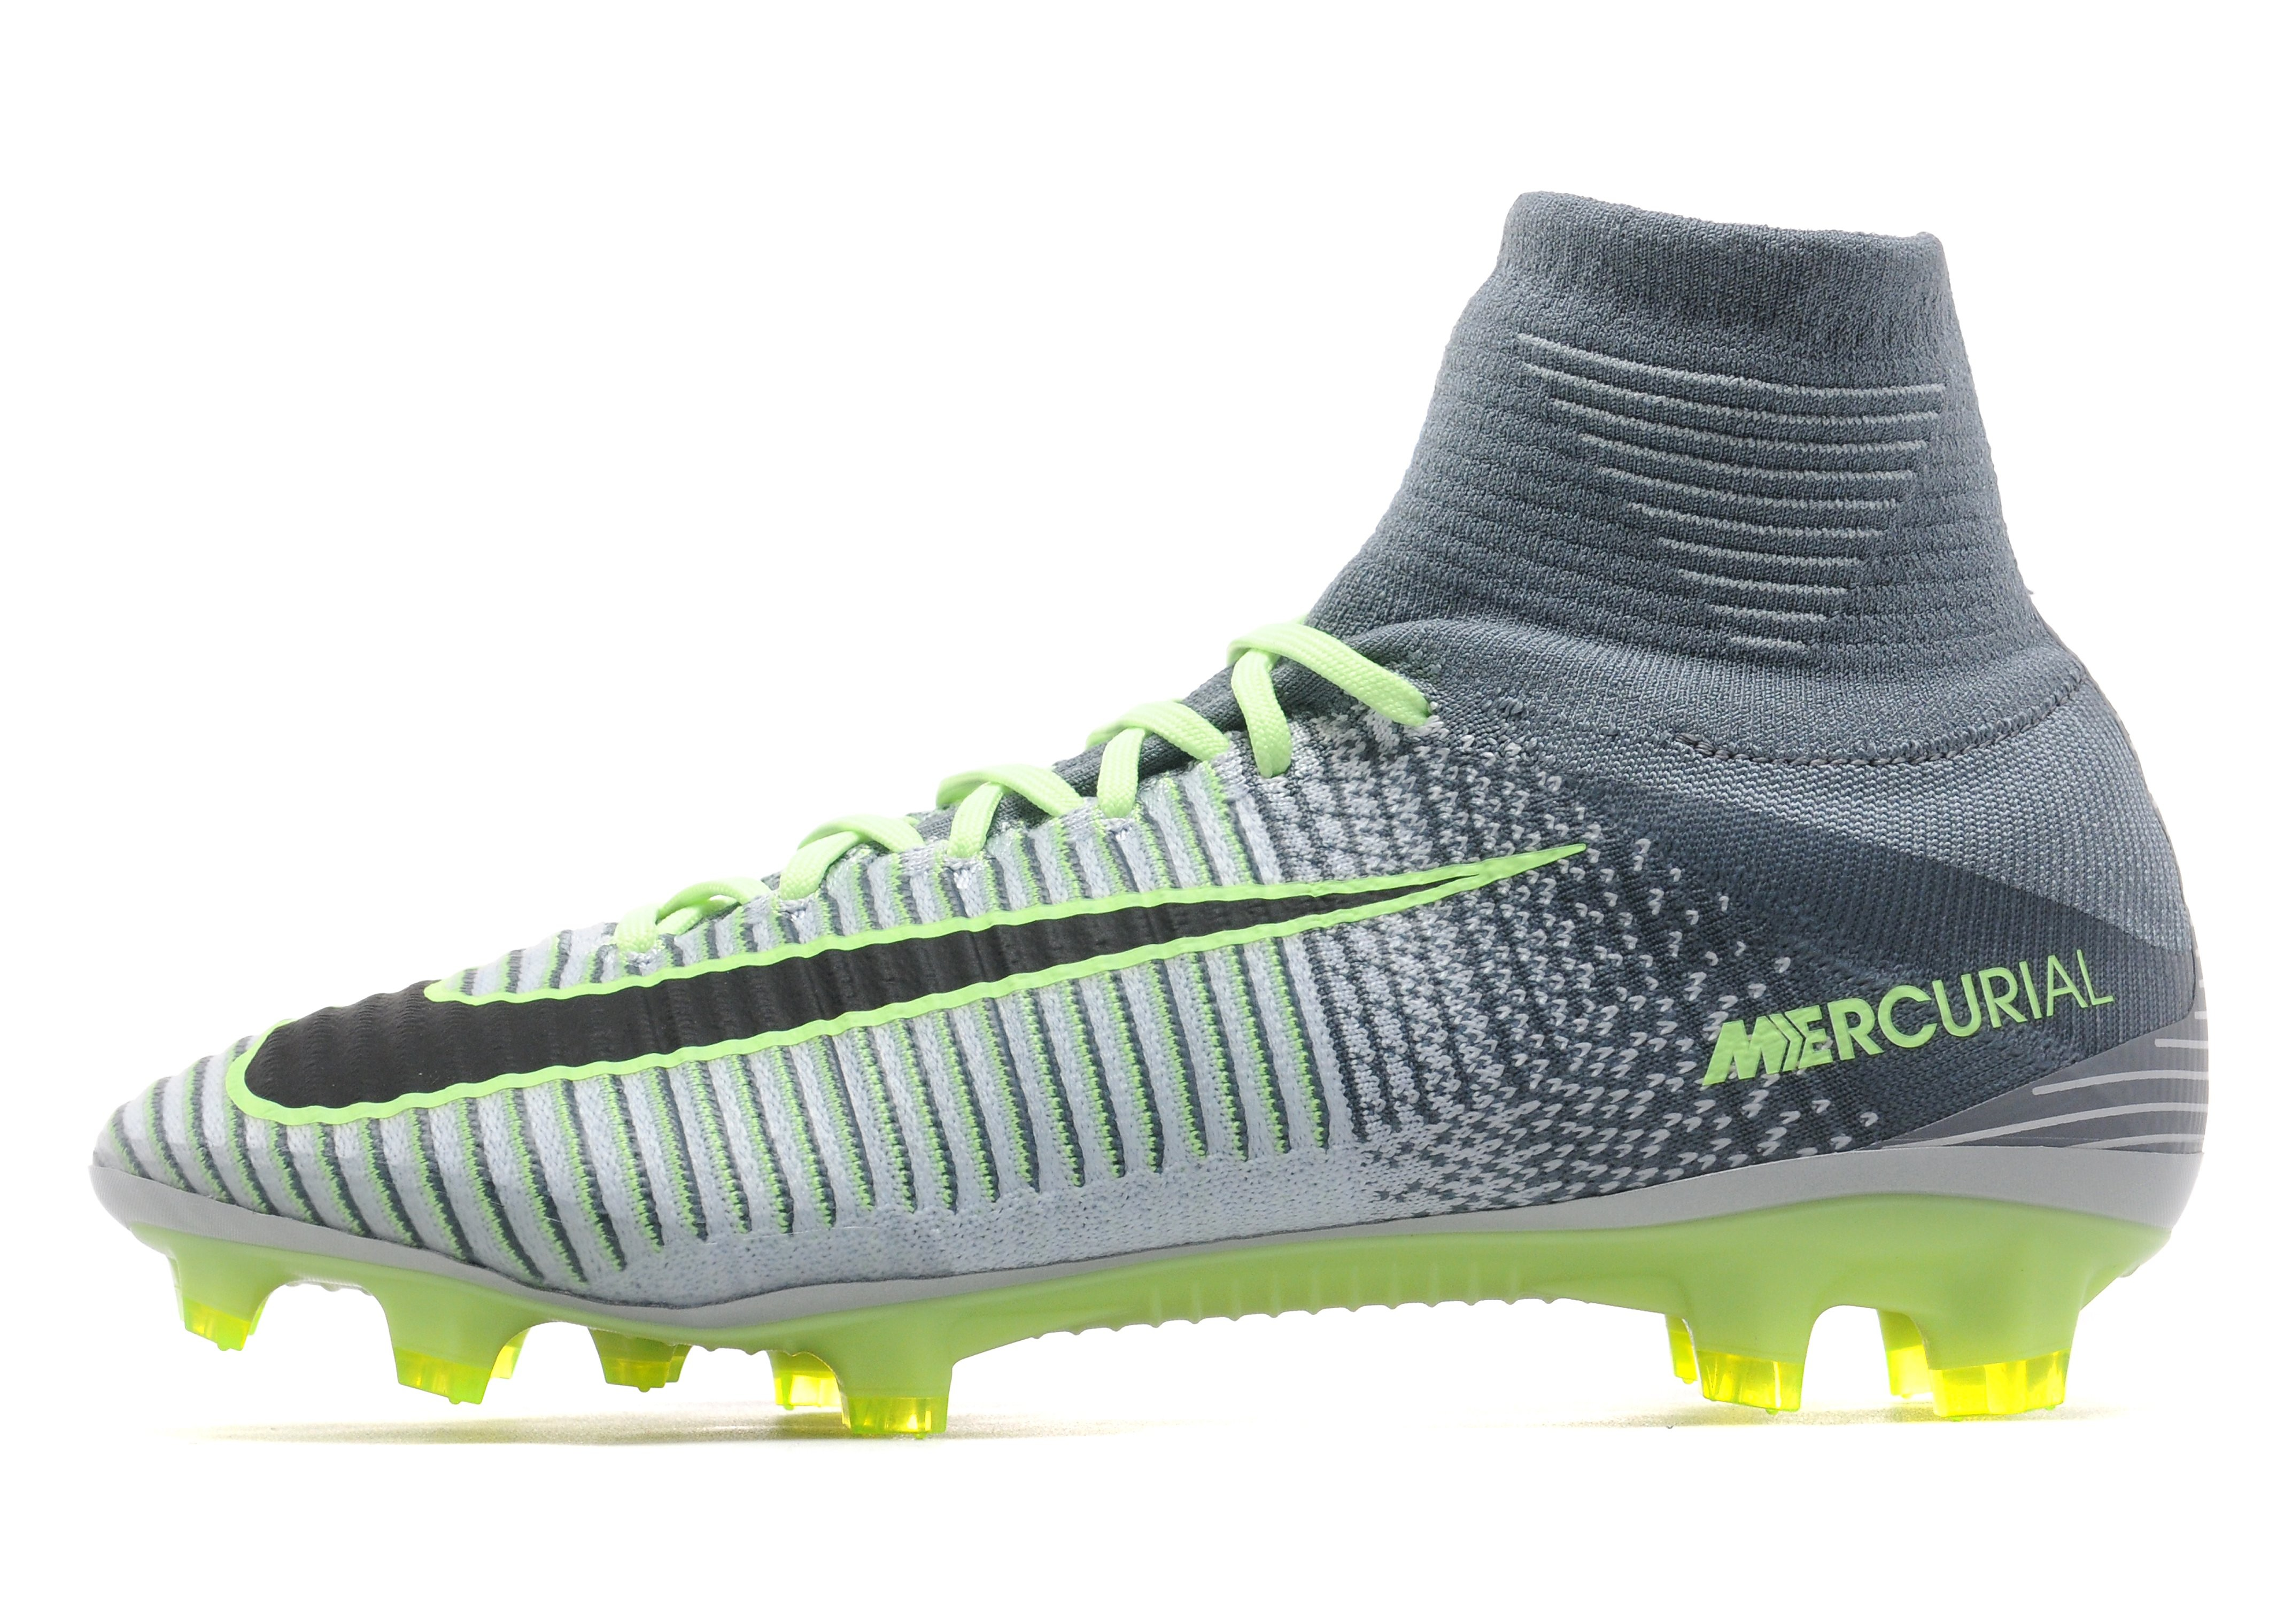 Nike Elite Mercurial Superfly V FG